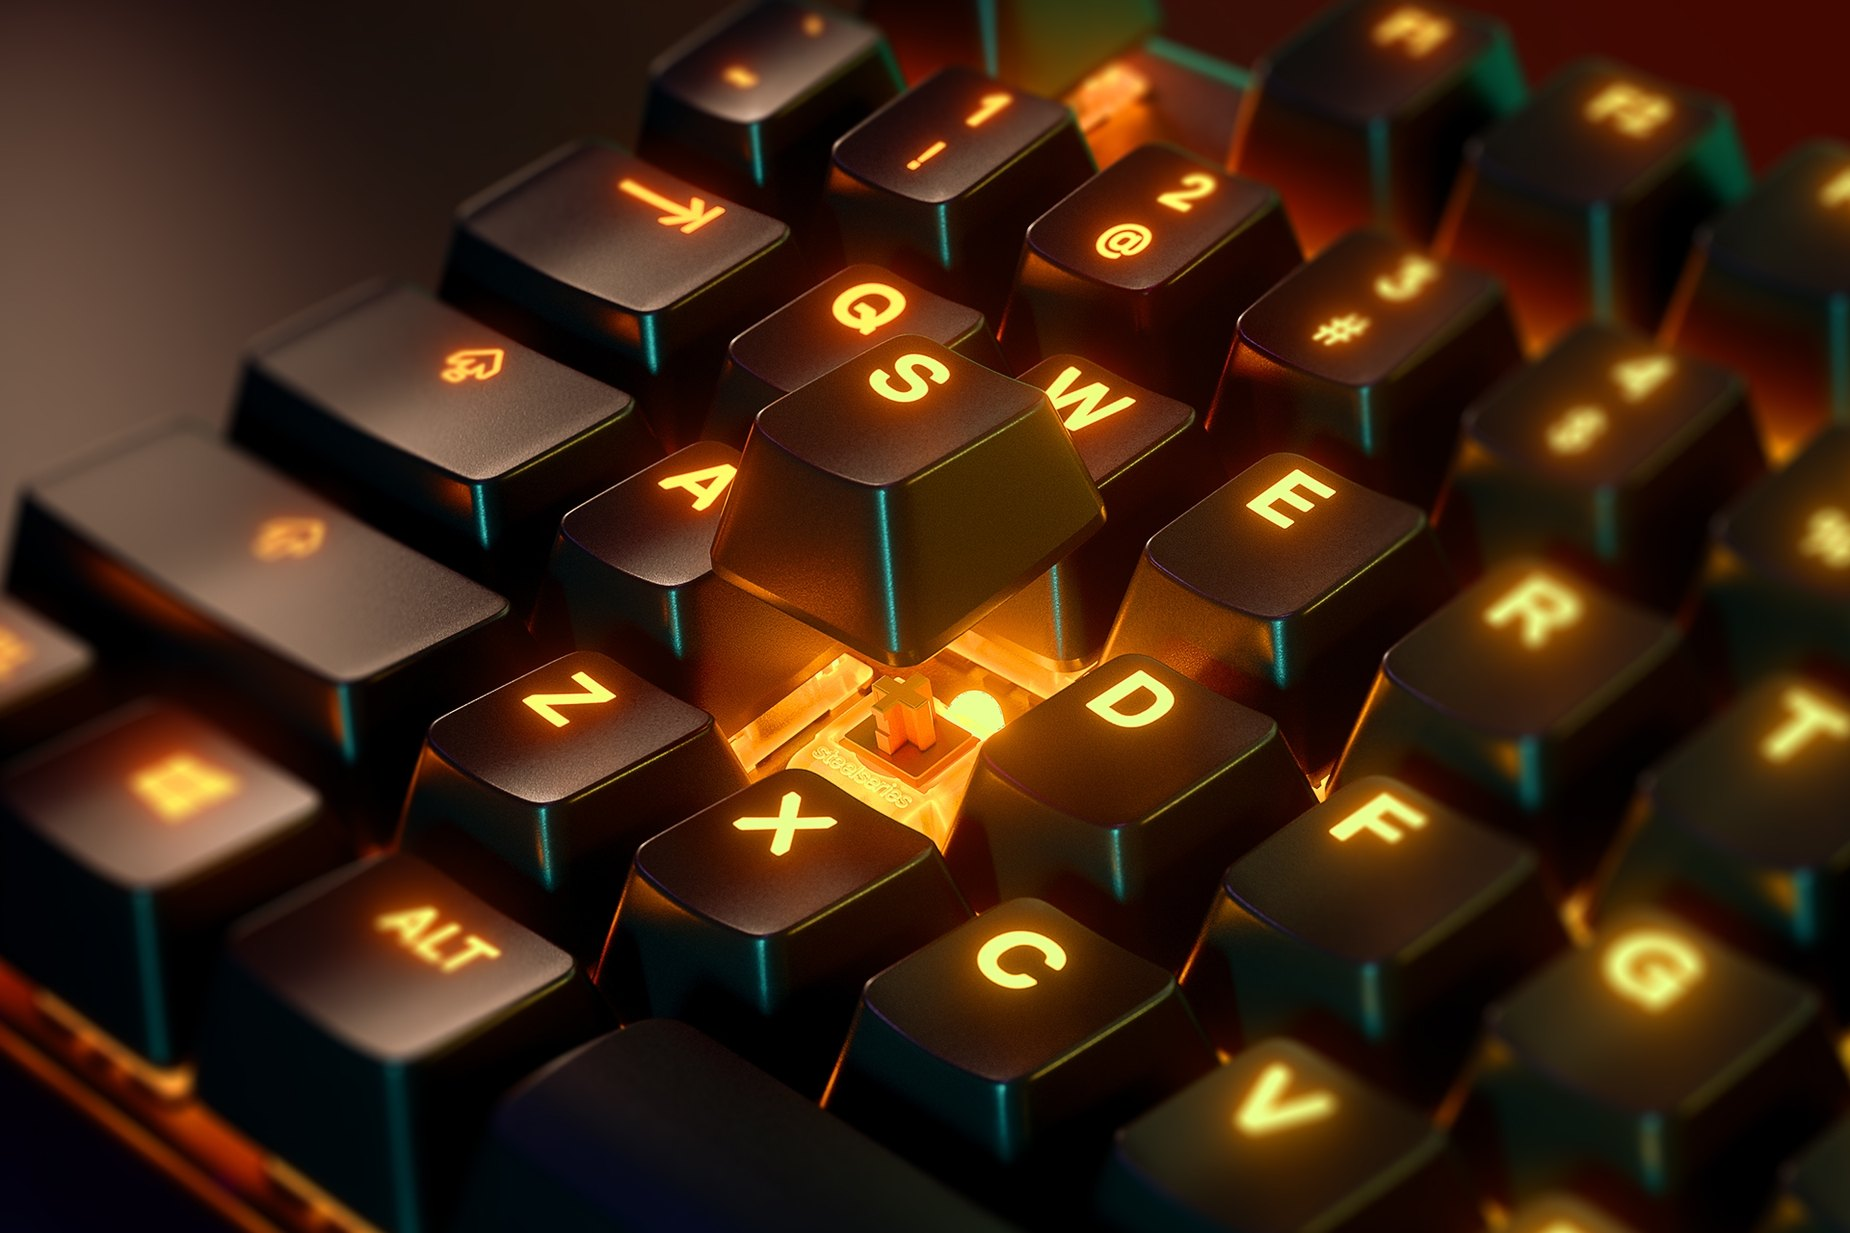 Zoomed in view of a single key on the French-Apex 7 TKL (Brown Switch) gaming keyboard, the key is raised up to show the SteelSeries QX2 Mechanical RGB Switch underneath